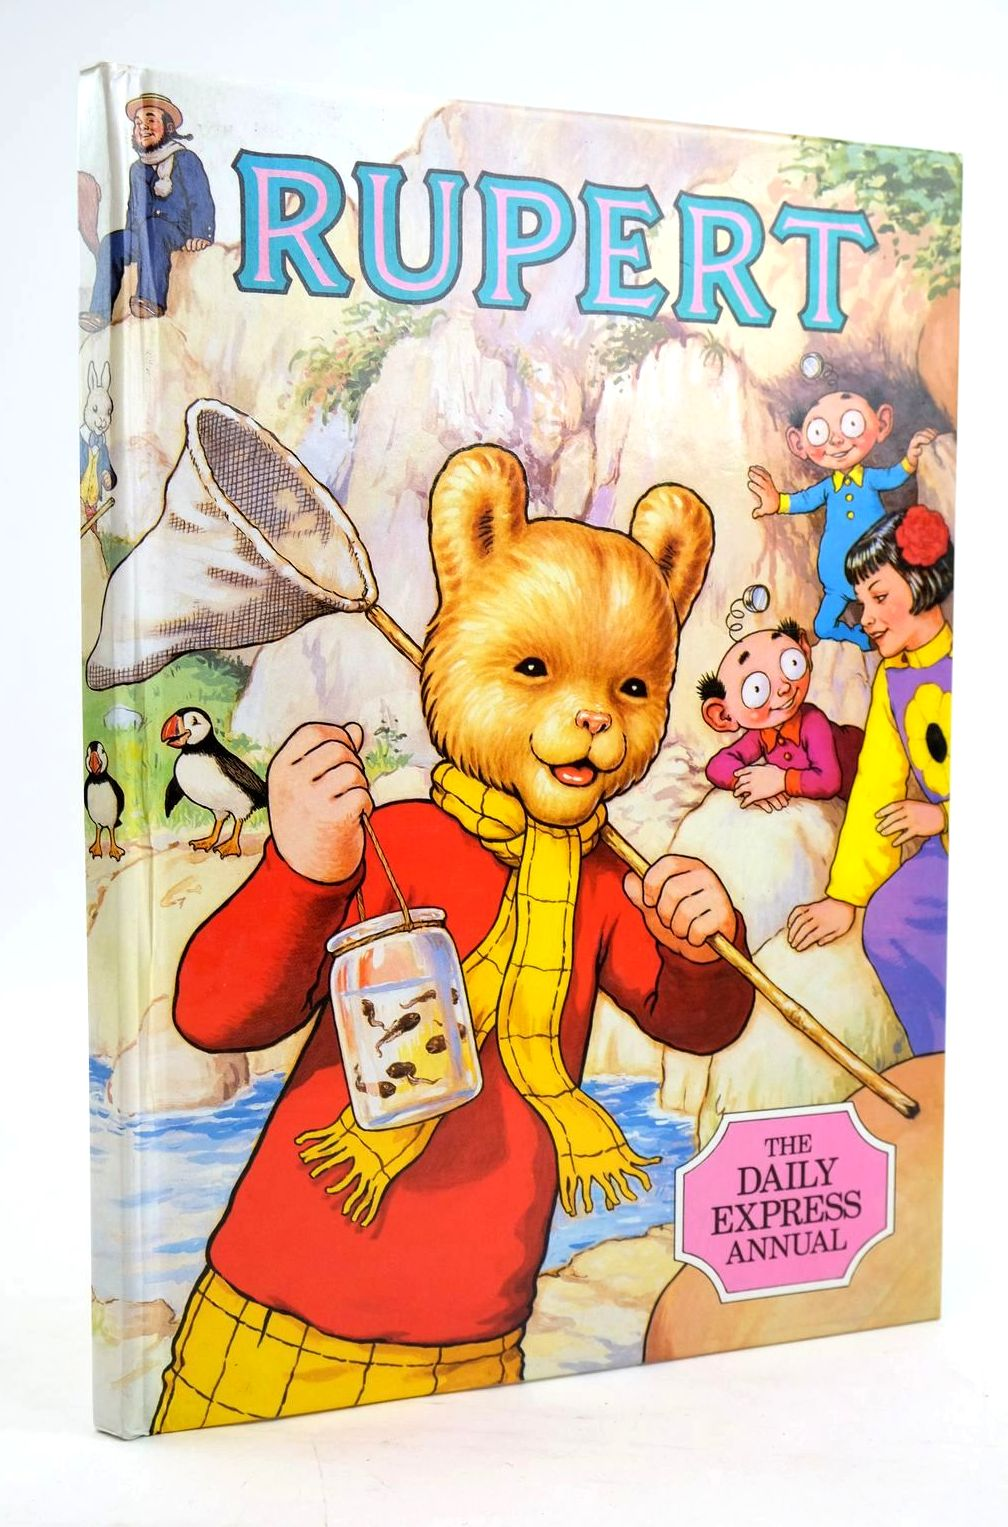 Photo of RUPERT ANNUAL 1986 illustrated by Harrold, John published by Express Newspapers Ltd. (STOCK CODE: 1319527)  for sale by Stella & Rose's Books